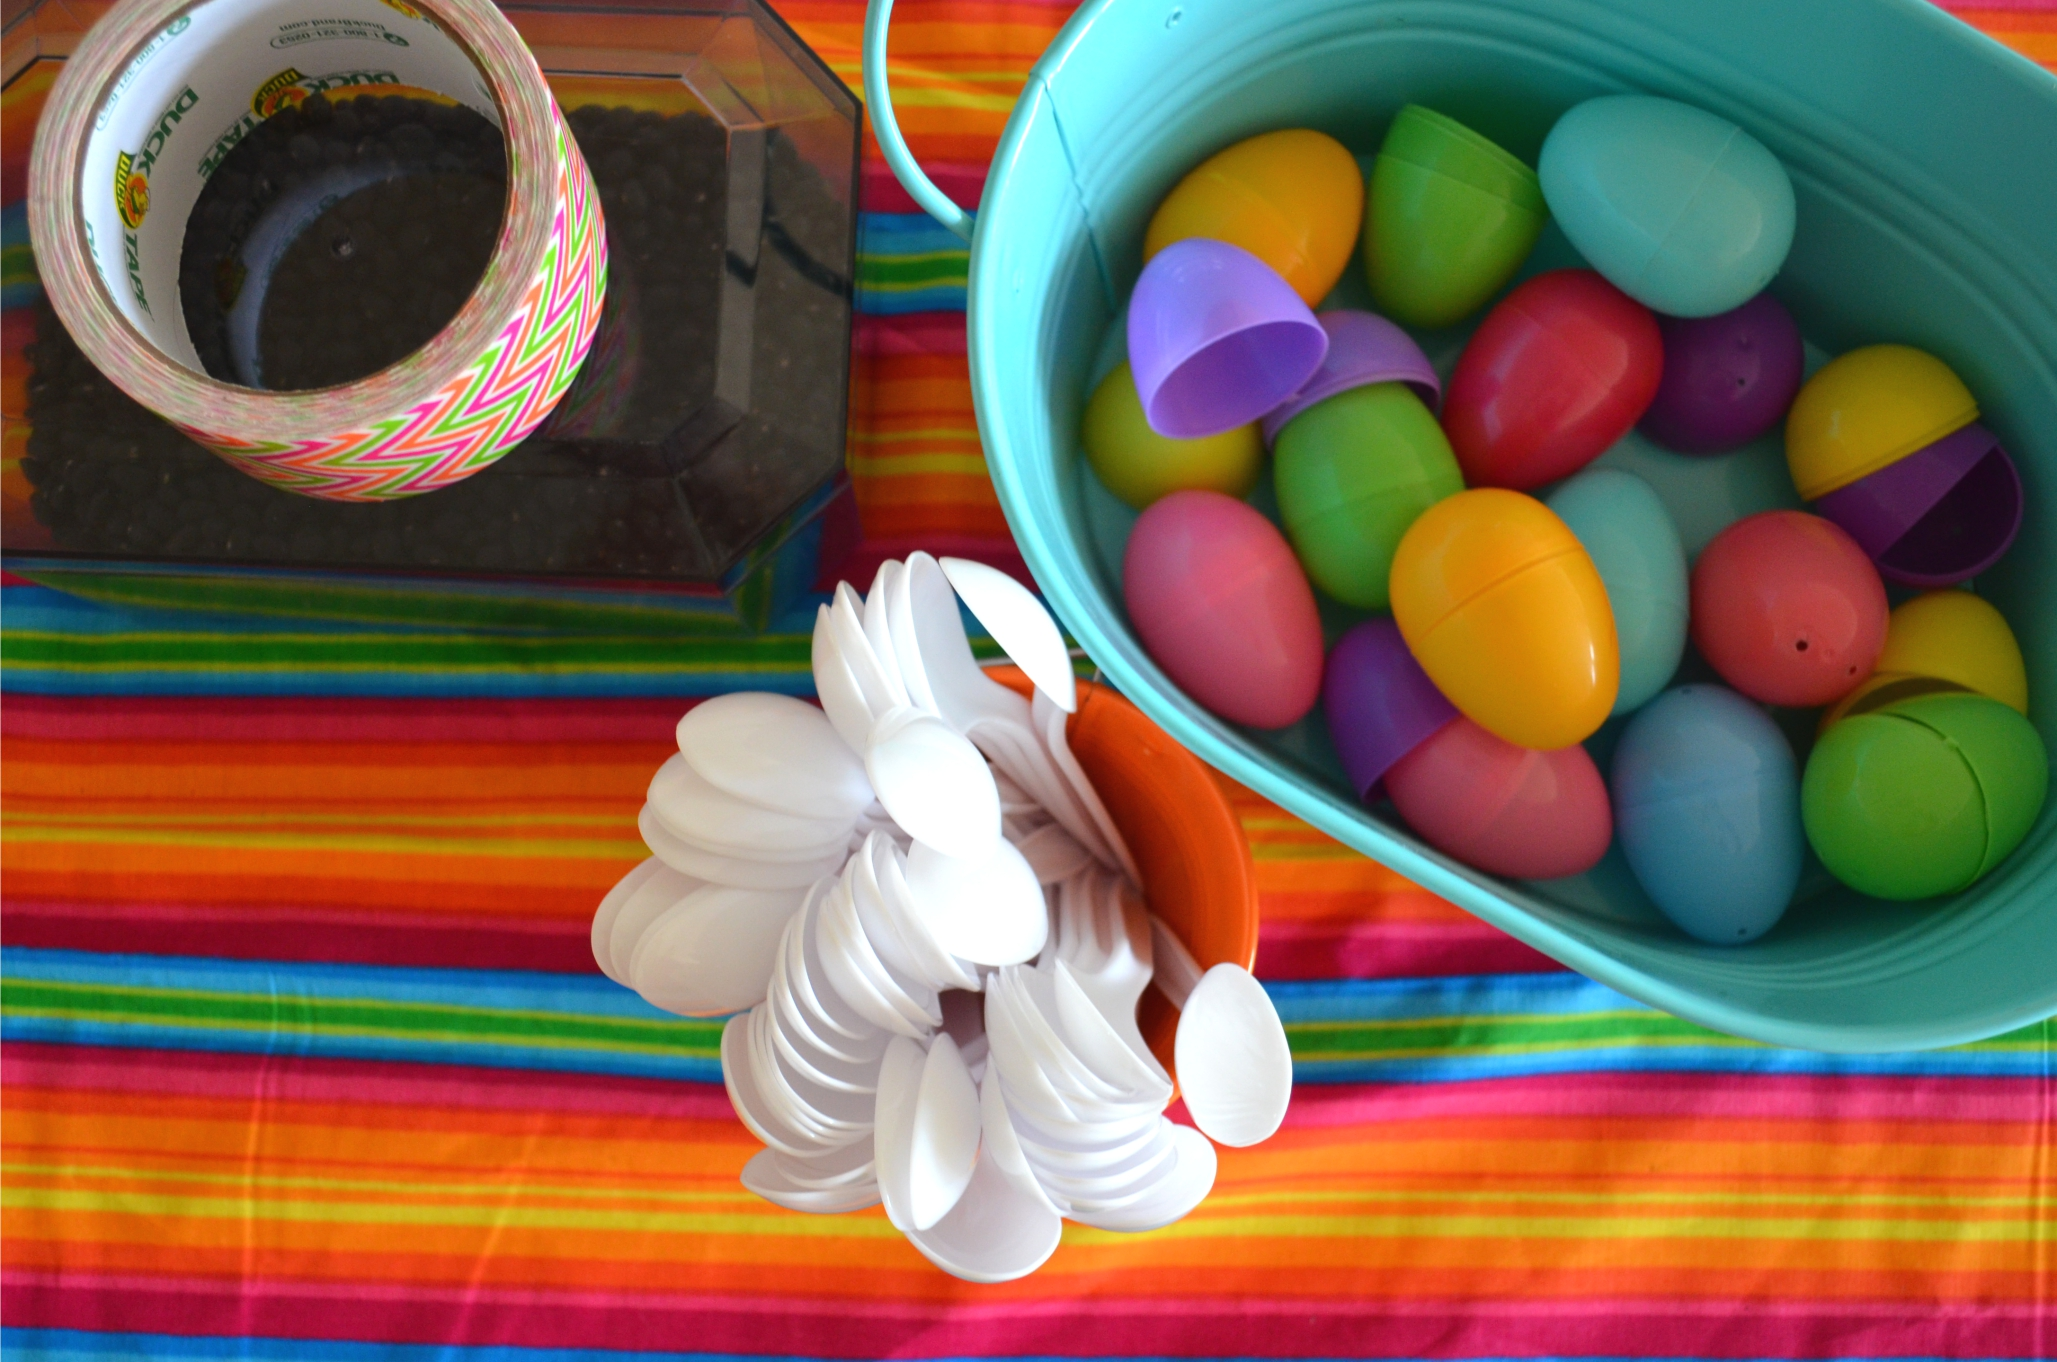 Supplies needed for this: Easter eggs, plastic spoons, rice or beans (dry), and tape.